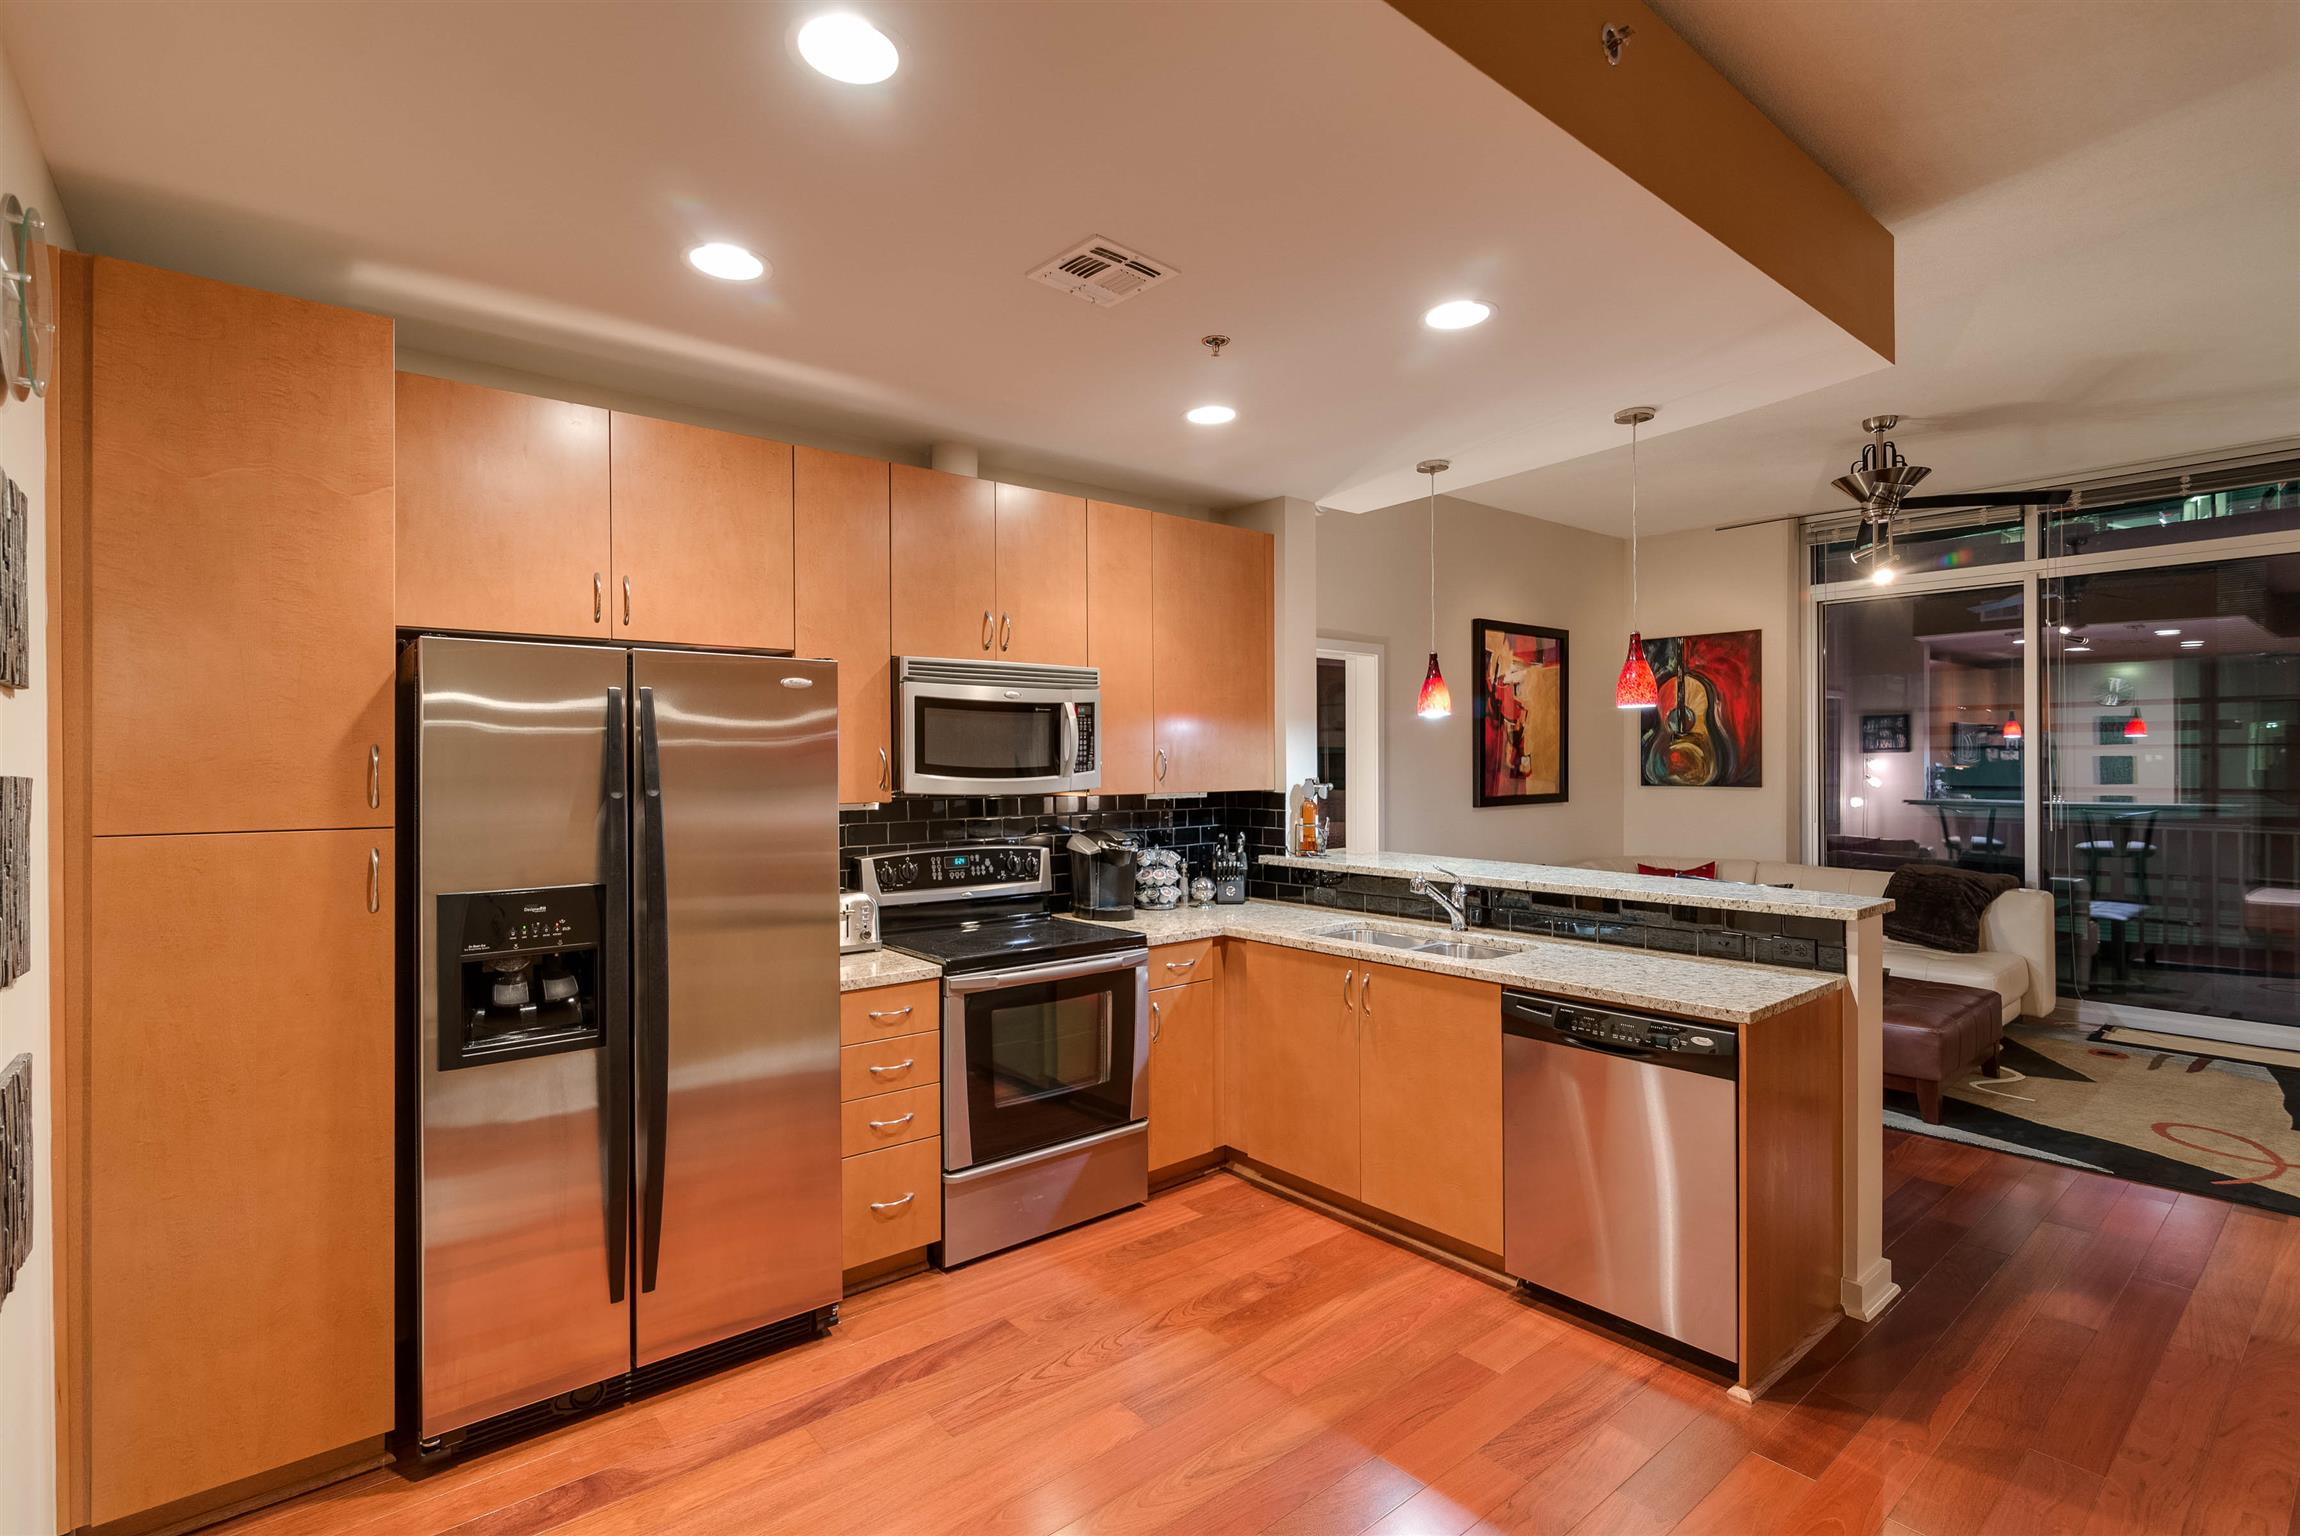 Hardwood floors, ceramic tile, Whrilpool washer, dryer, Whirlpool gold refrigerator, microwave & dishwasher. 24 hour concierge, controlled access entry, fitness center, pool, downtown views, close to everything.